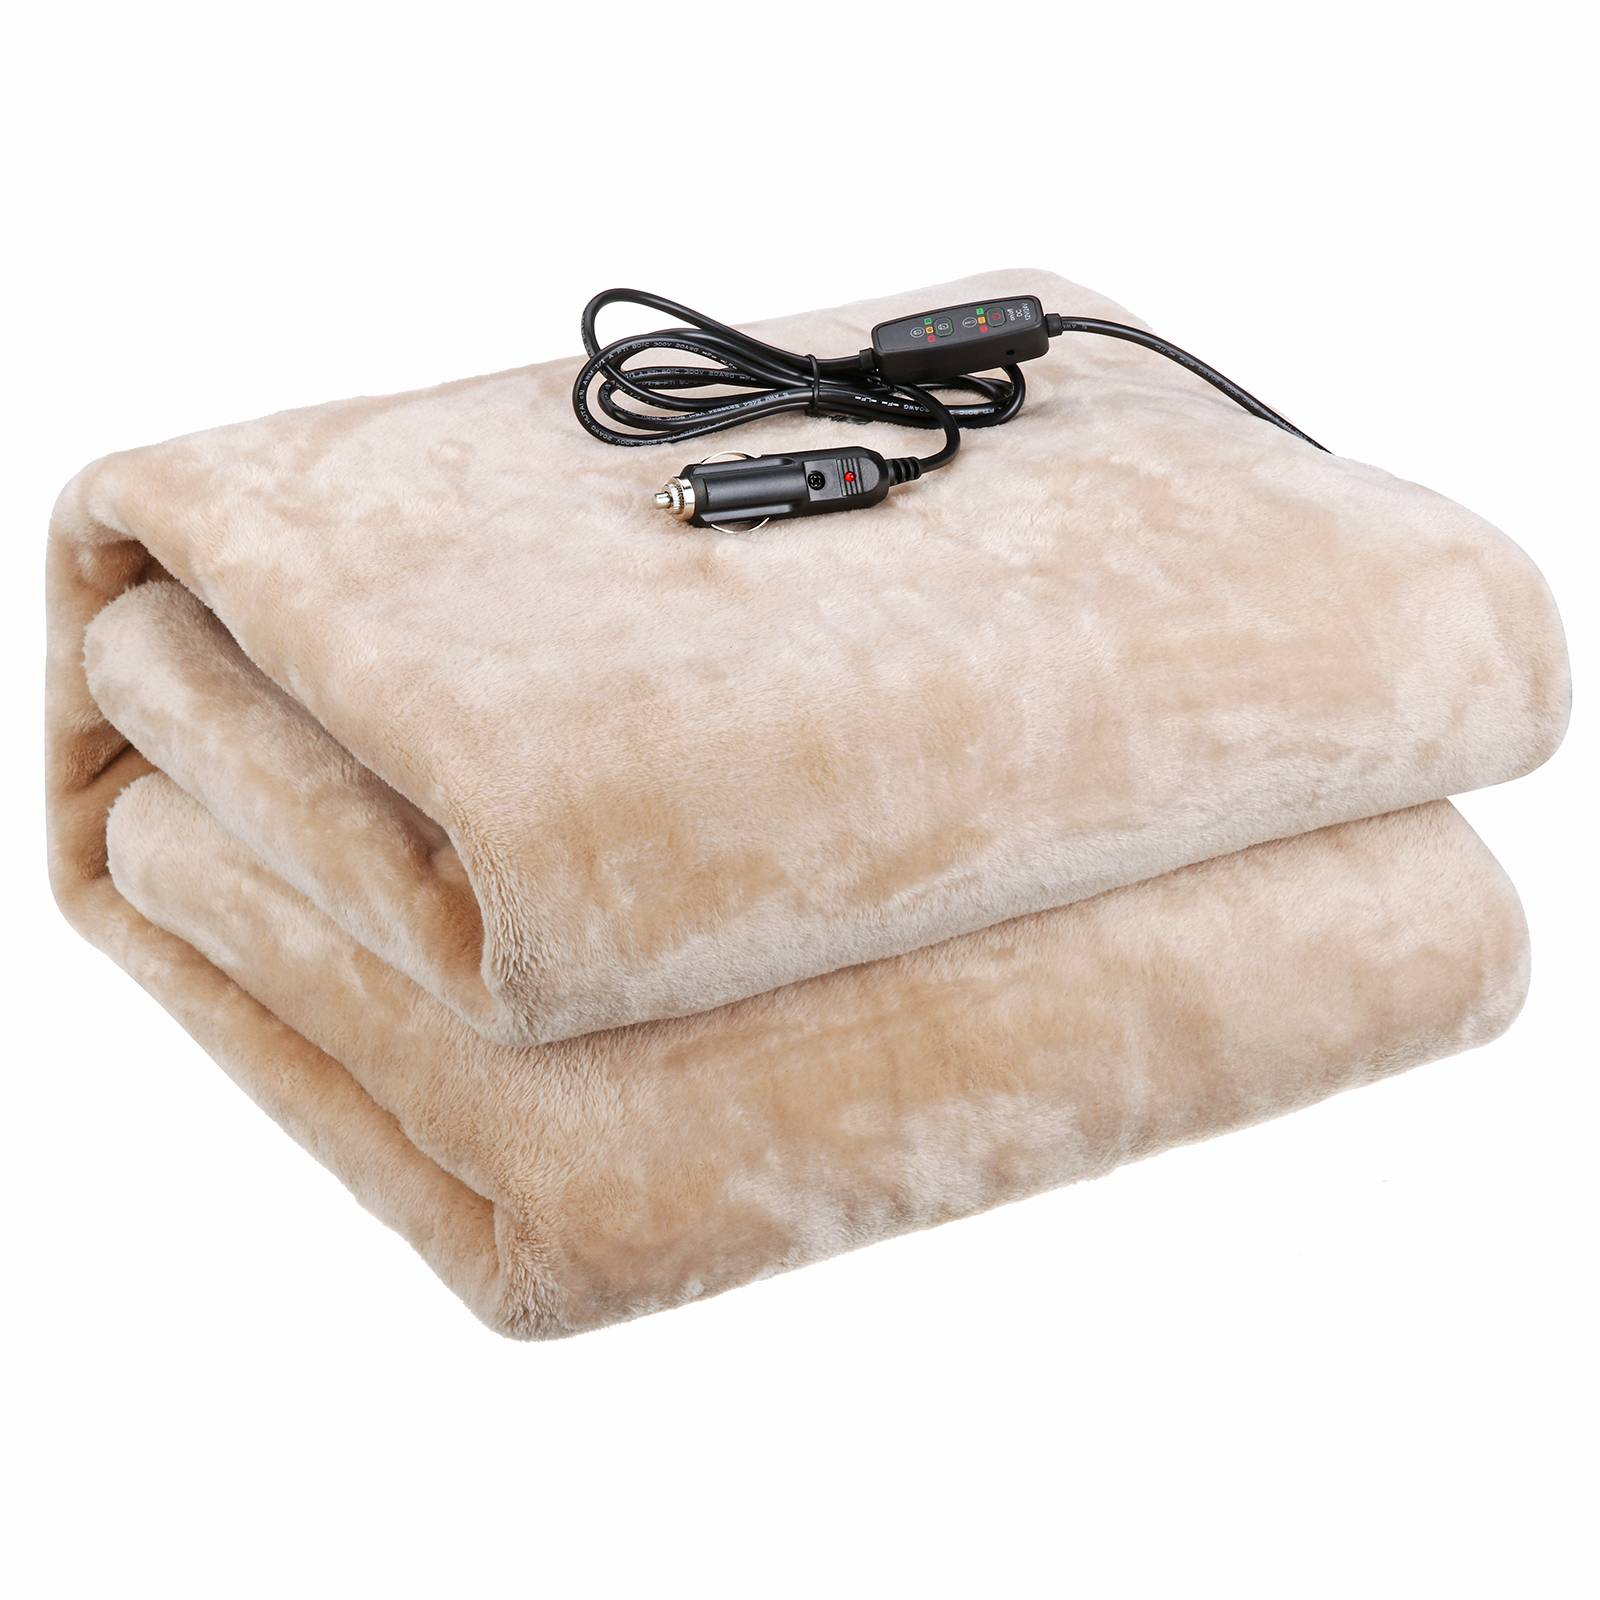 Audew 12V/24V Heated Car Blanket, Breathable and Soft Flannel Material, Great for Car, Truck & RV